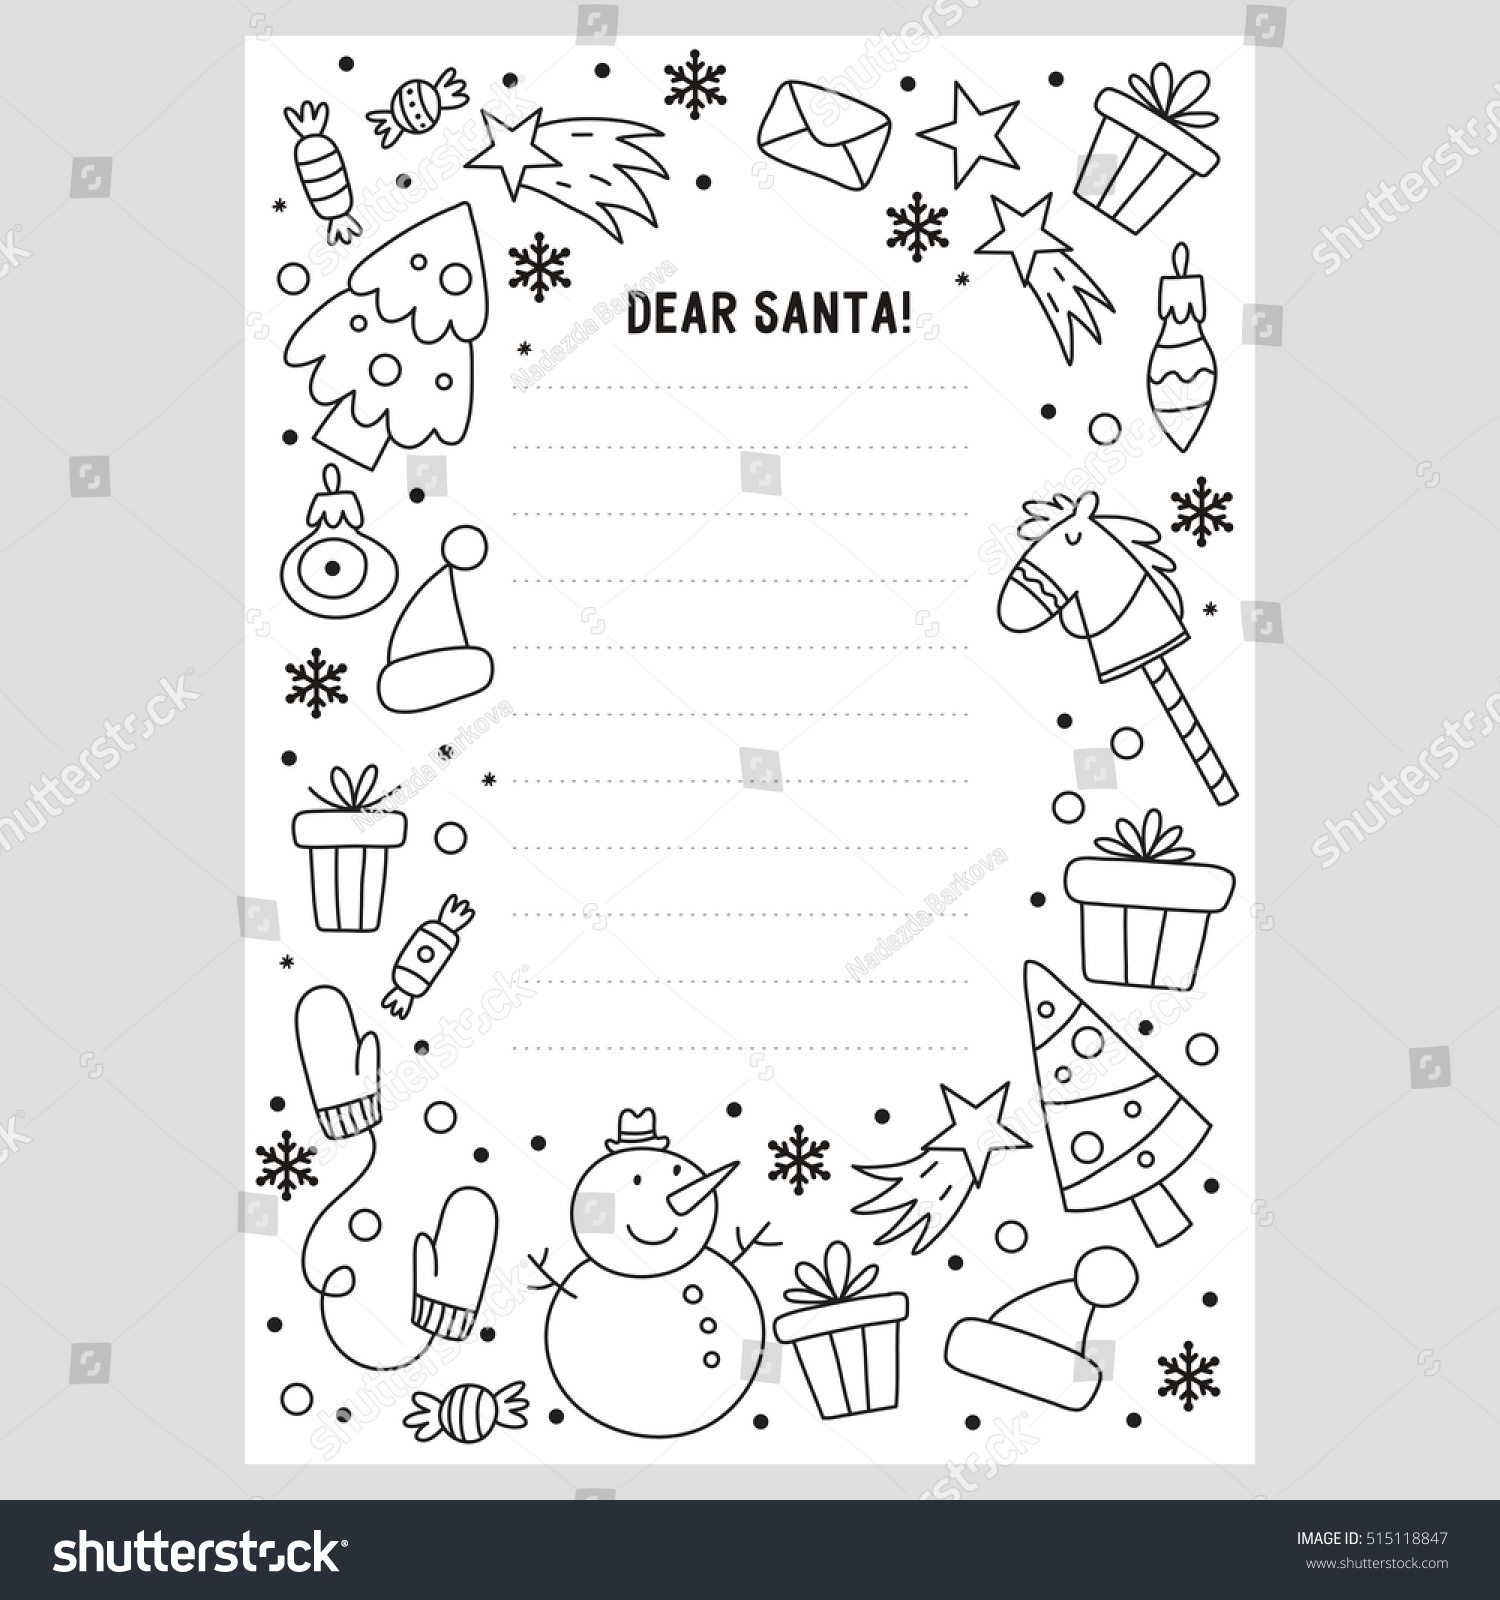 Coloring Santa Letter With Dear Page Stock Vector Royalty Free